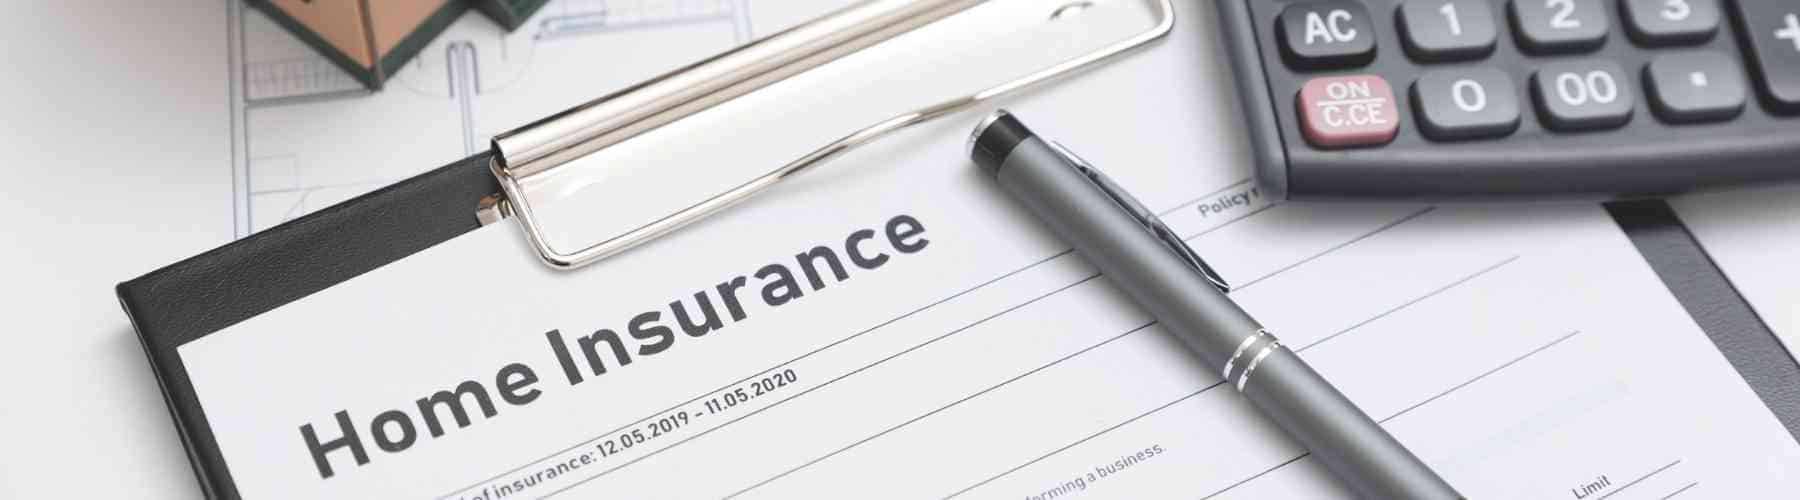 Home Insurance - Cut Expenses